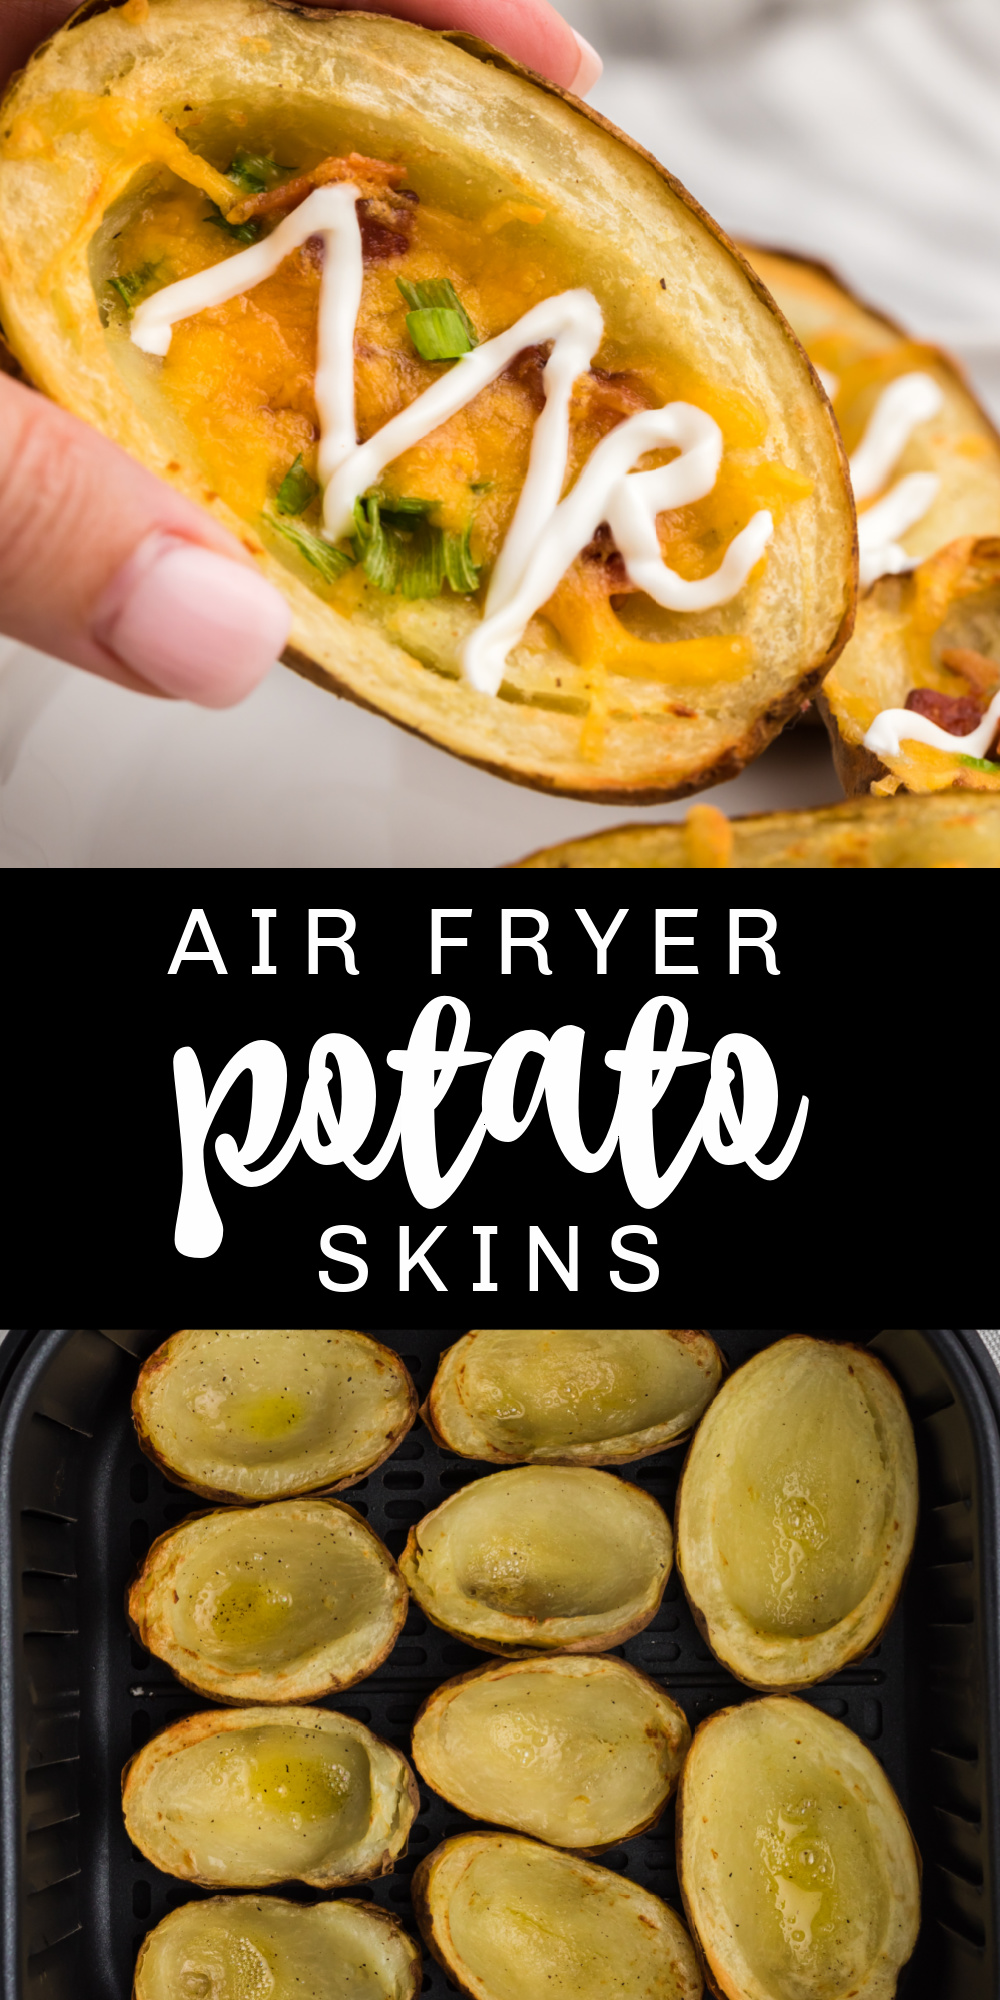 These Air Fryer Potato Skins are crispy, loaded, and delicious! Made with petite potatoes, cheese, bacon, sour cream, and chives. It's the perfect easy air fryer appetizer everyone loves to snack on.